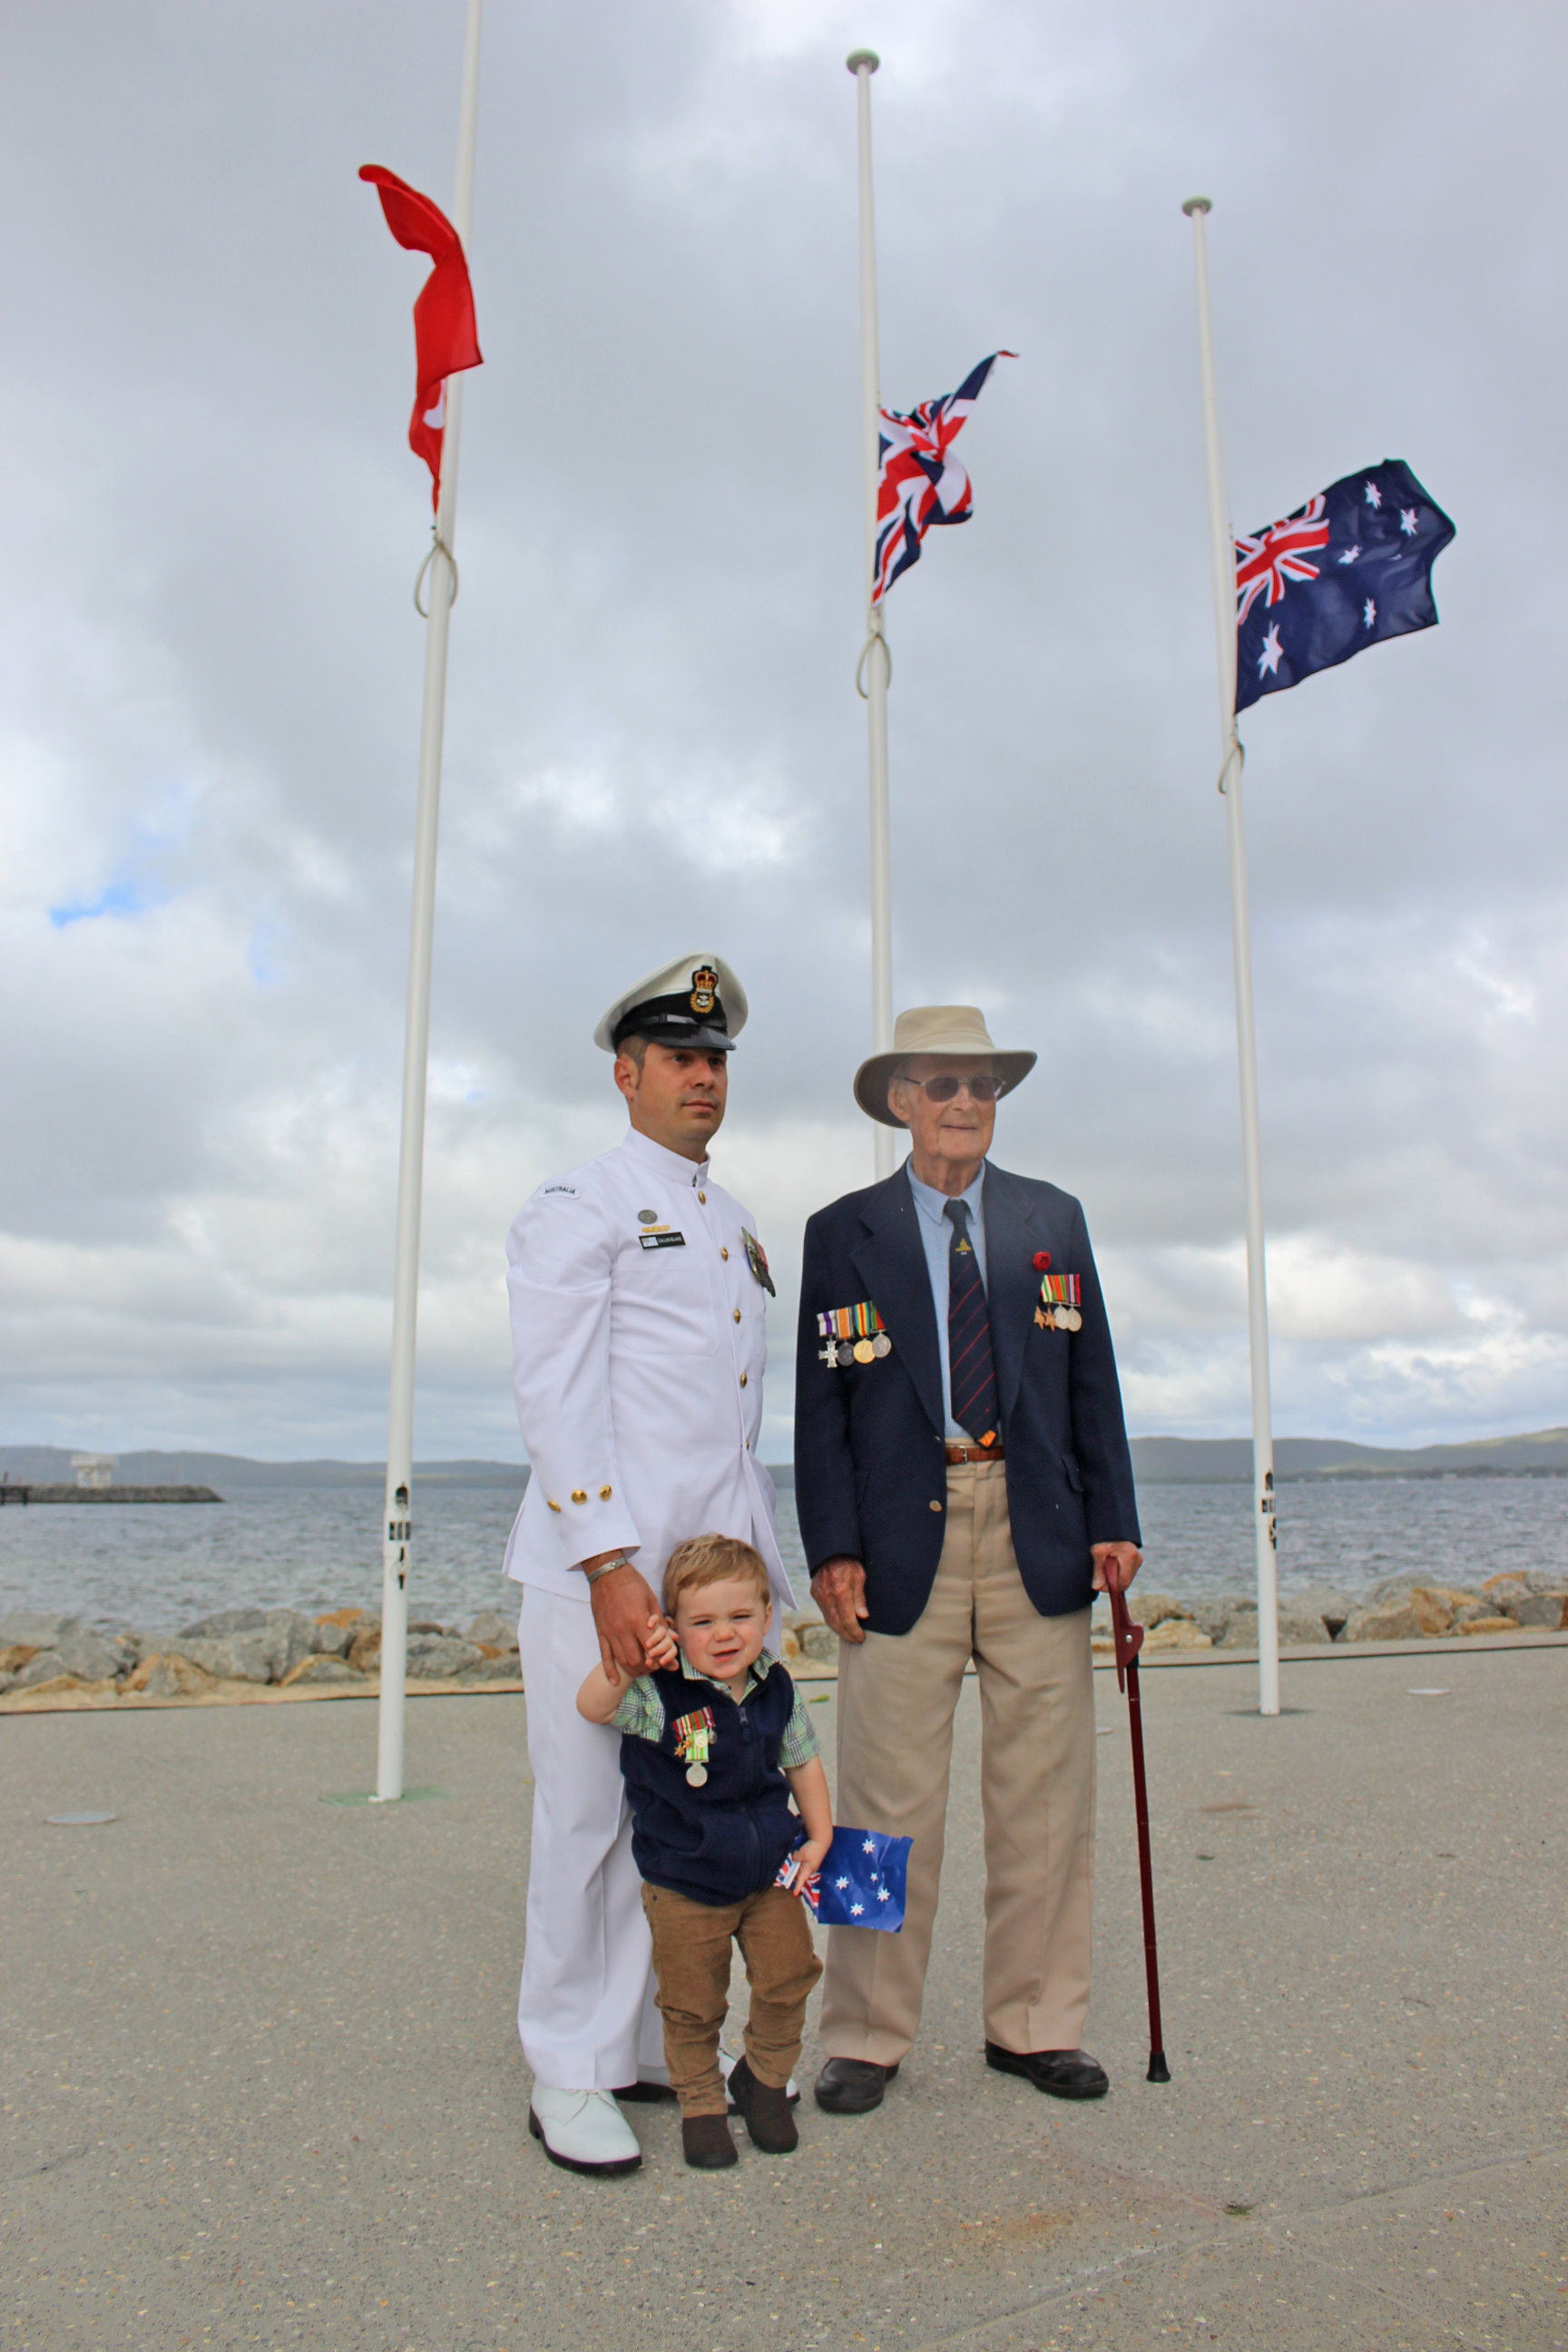 Generations unite at Anzac Day commemorations in Albany: WA.